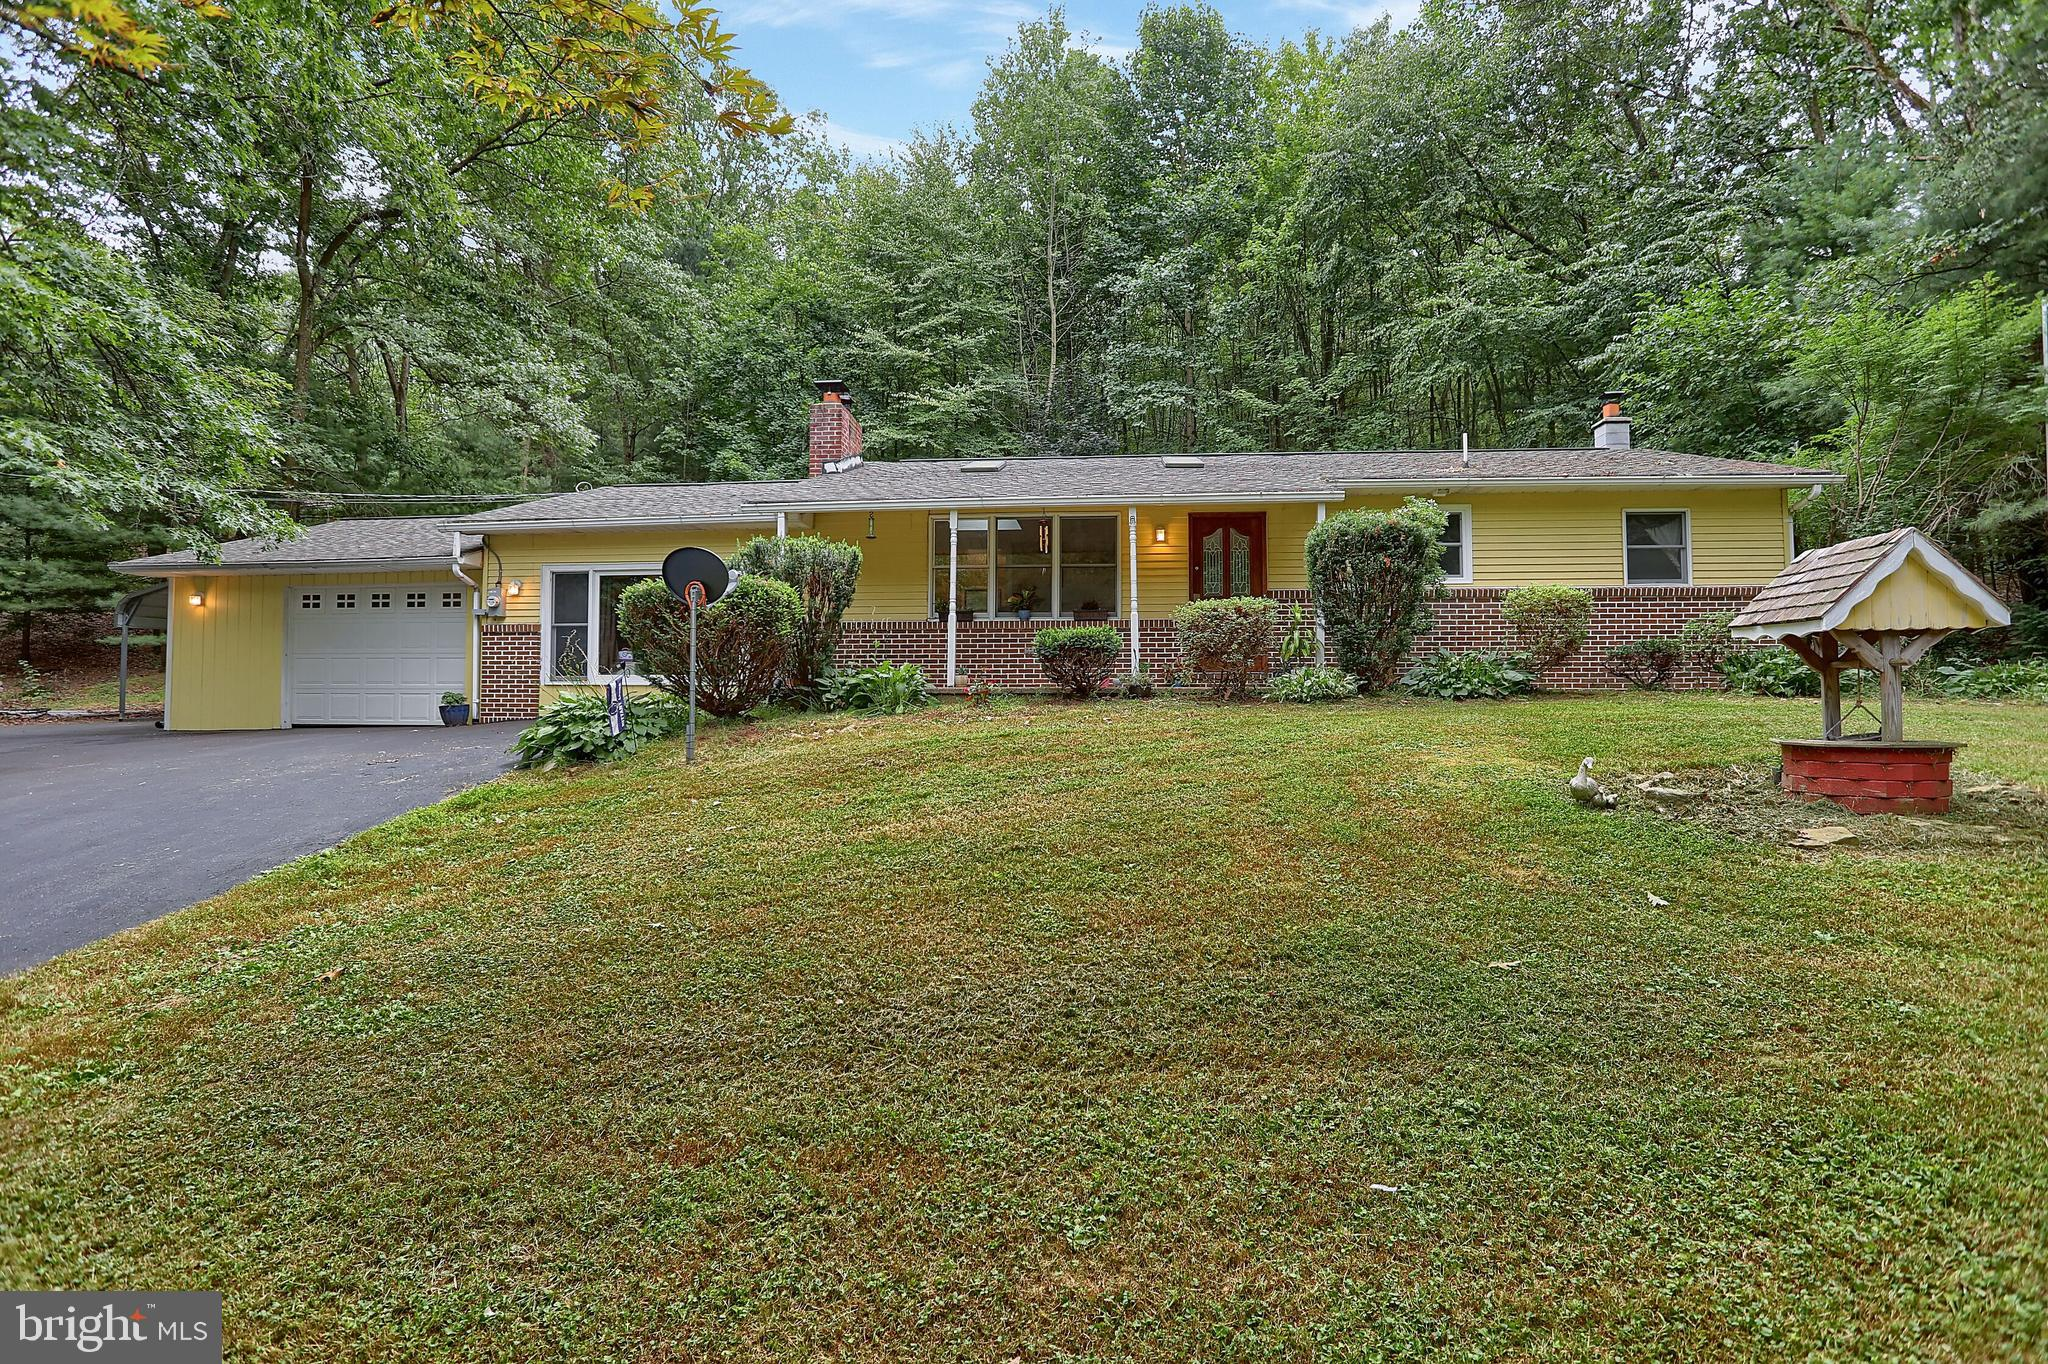 967 CLOUSER HOLLOW ROAD, NEW BLOOMFIELD, PA 17068